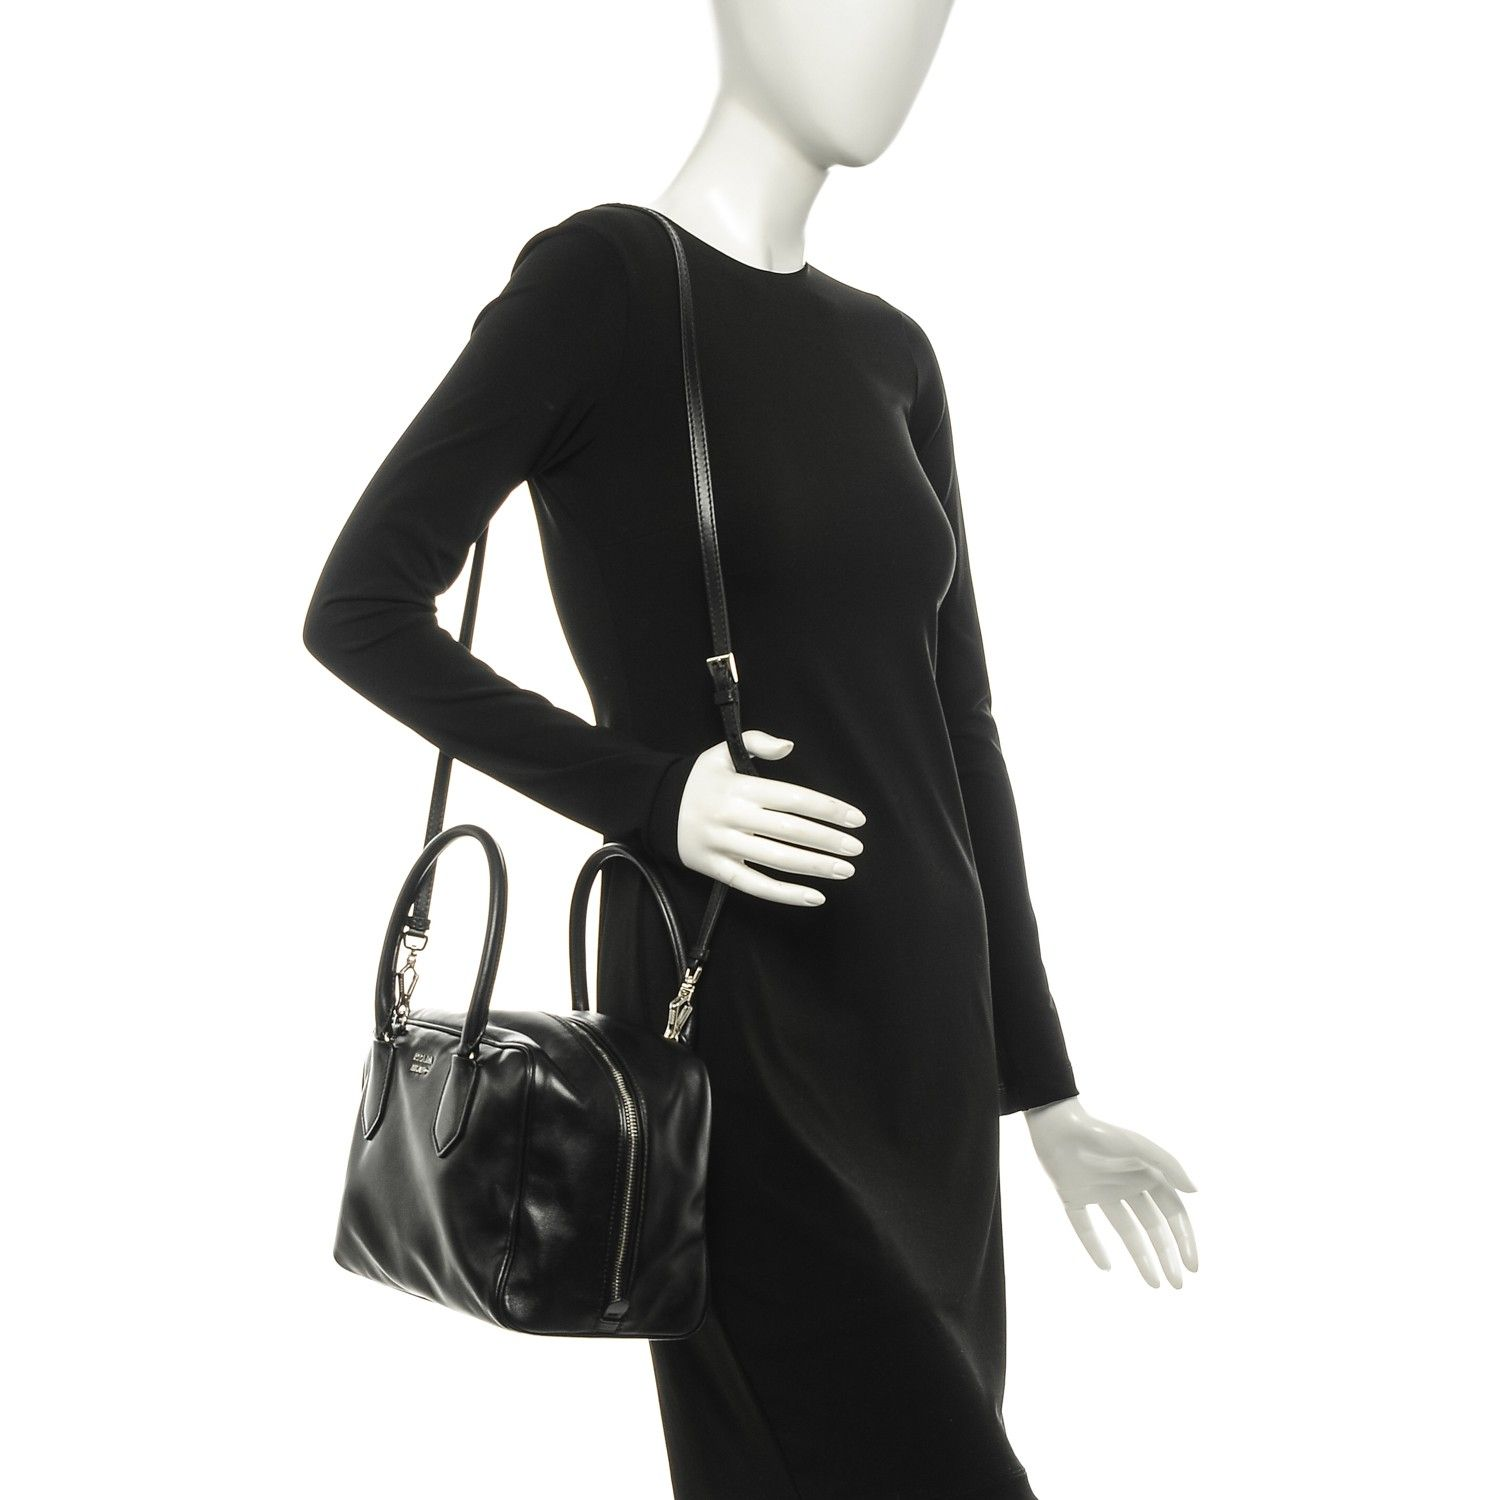 85e0d3a11a5b This is an authentic PRADA Soft Calf Medium Inside Tote Nero Black Mughetto.  This stunning